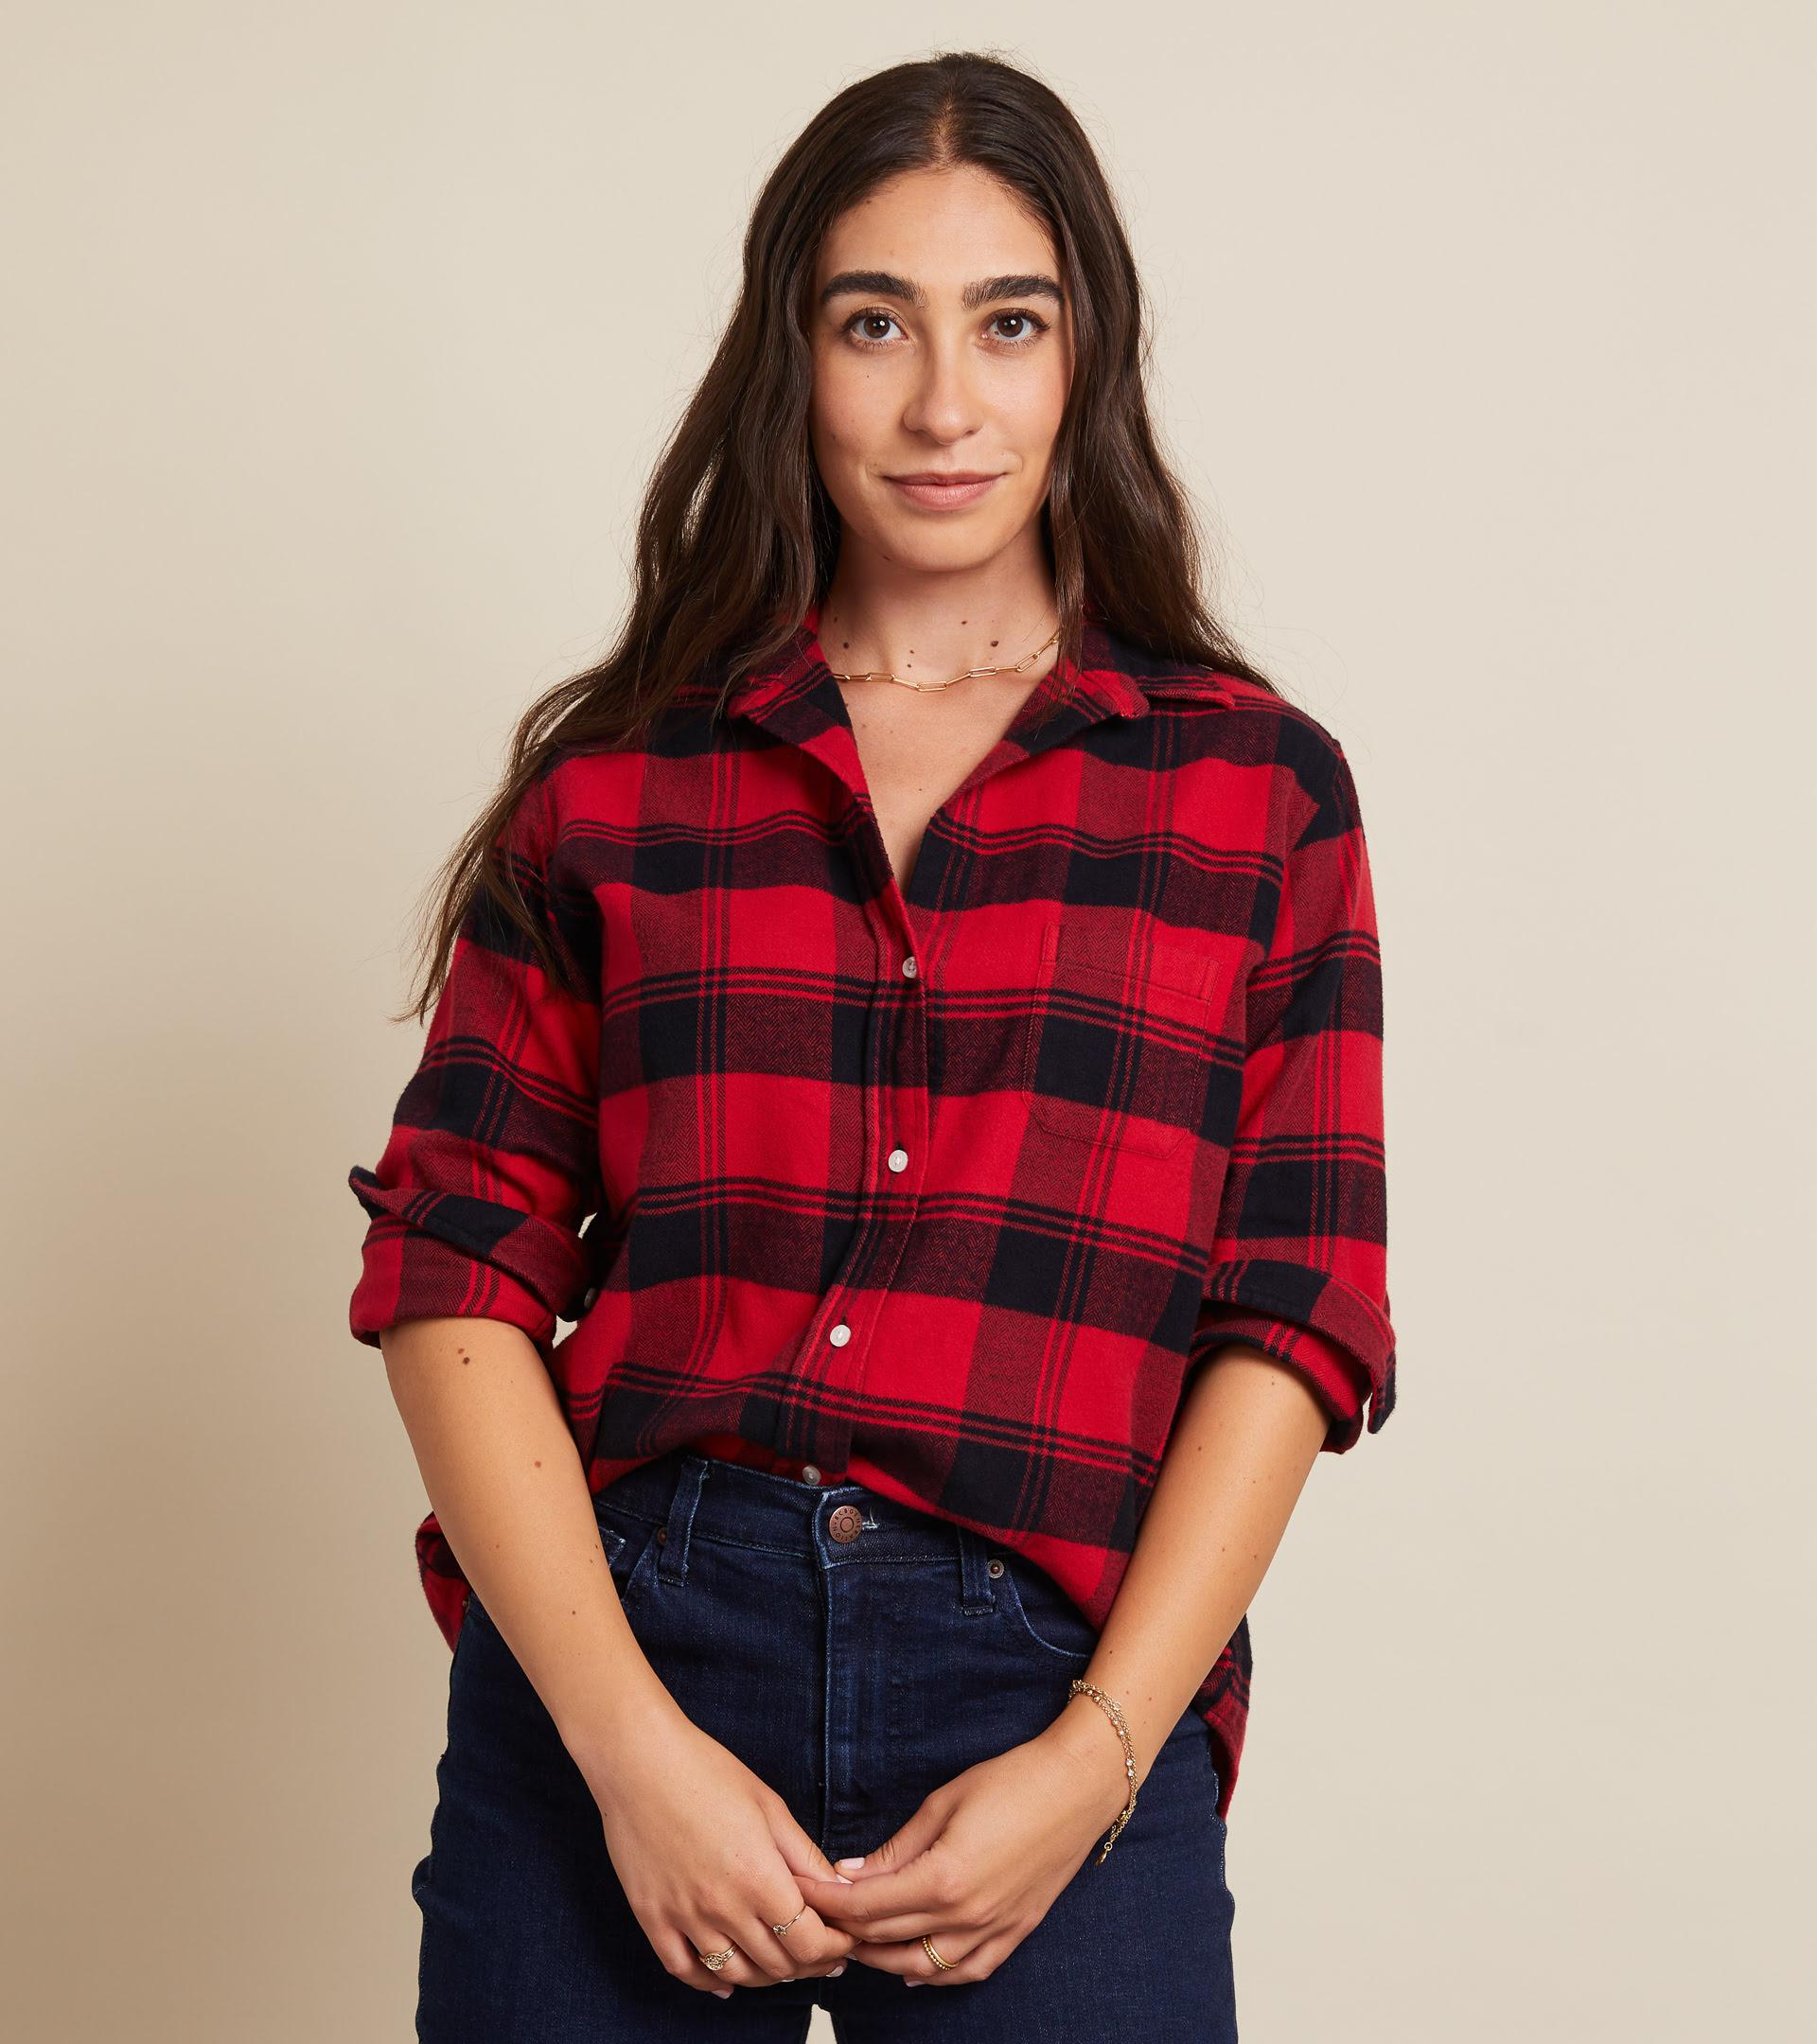 The Hero Red with Black Plaid, Plush Flannel